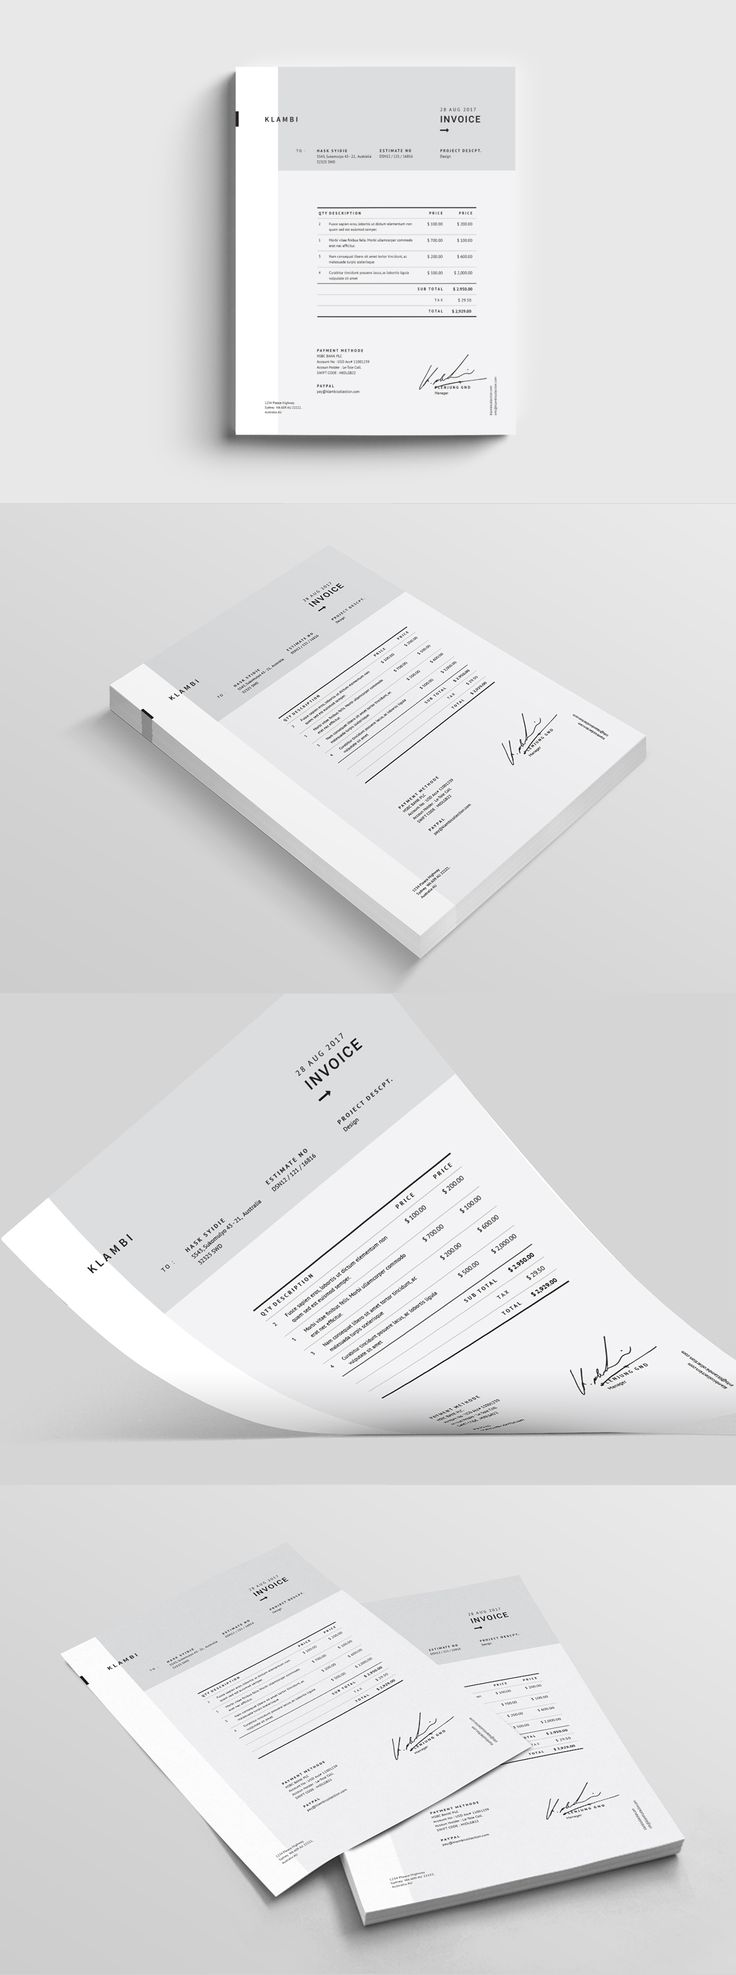 best ideas about invoice design invoice template fashion invoice graphic templates by boxkayu subscribe to envato elements for unlimited graphic templates s for a single monthly fee